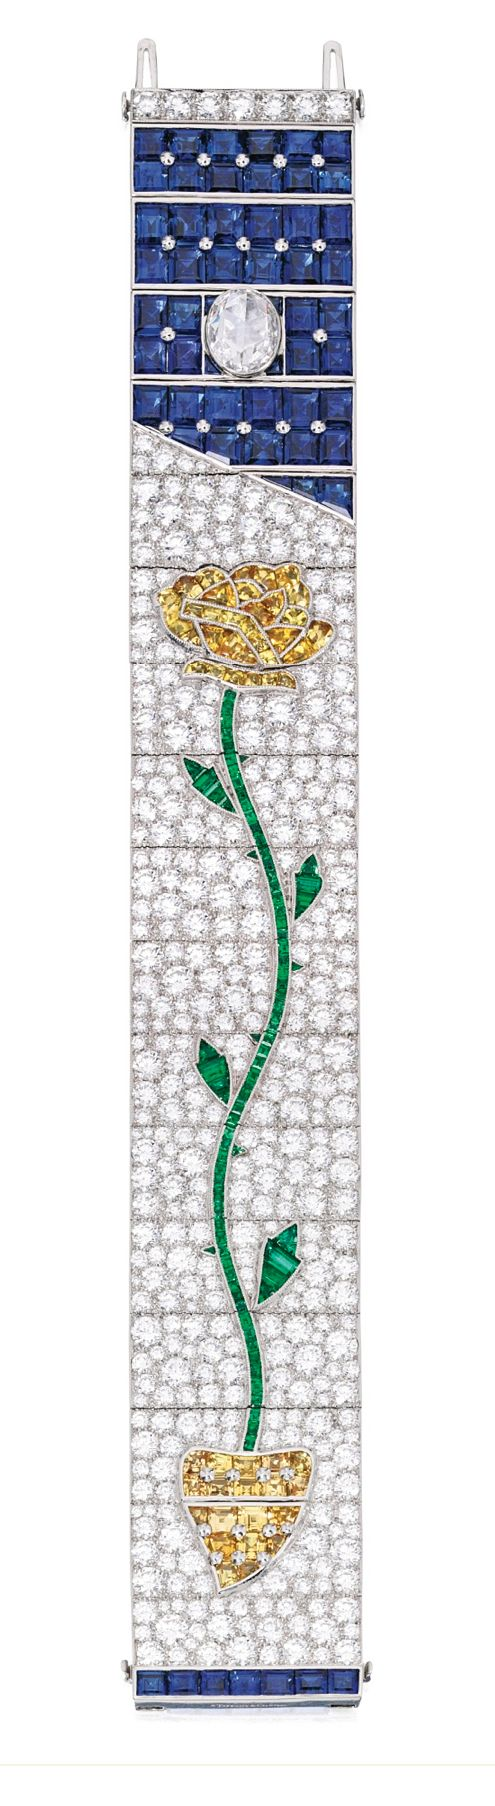 PLATINUM, DIAMOND AND COLORED STONE 'ROSE' BRACELET, TIFFANY & CO....